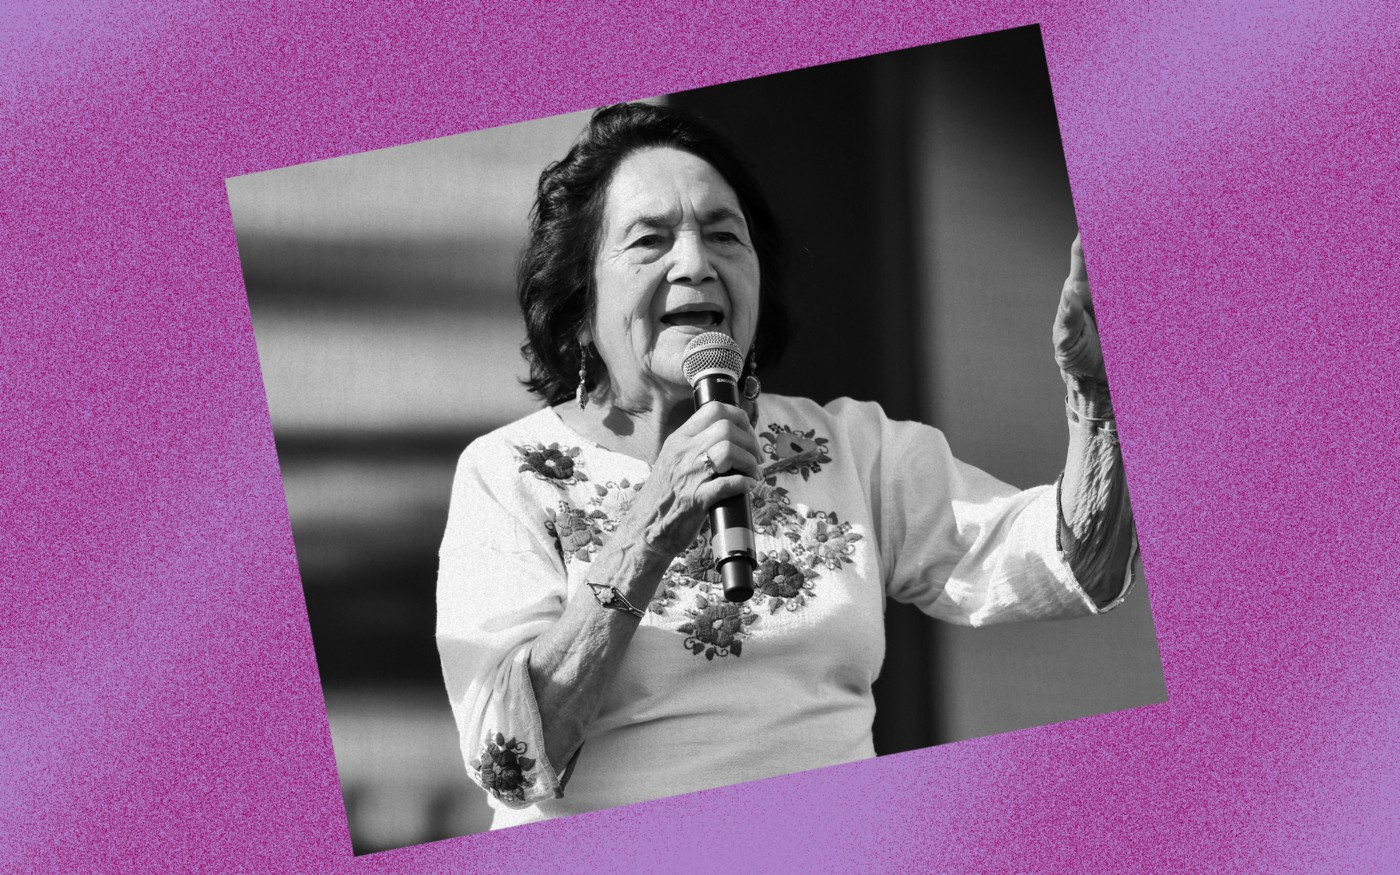 Black and white photo of Dolores Huerta against a violet background.